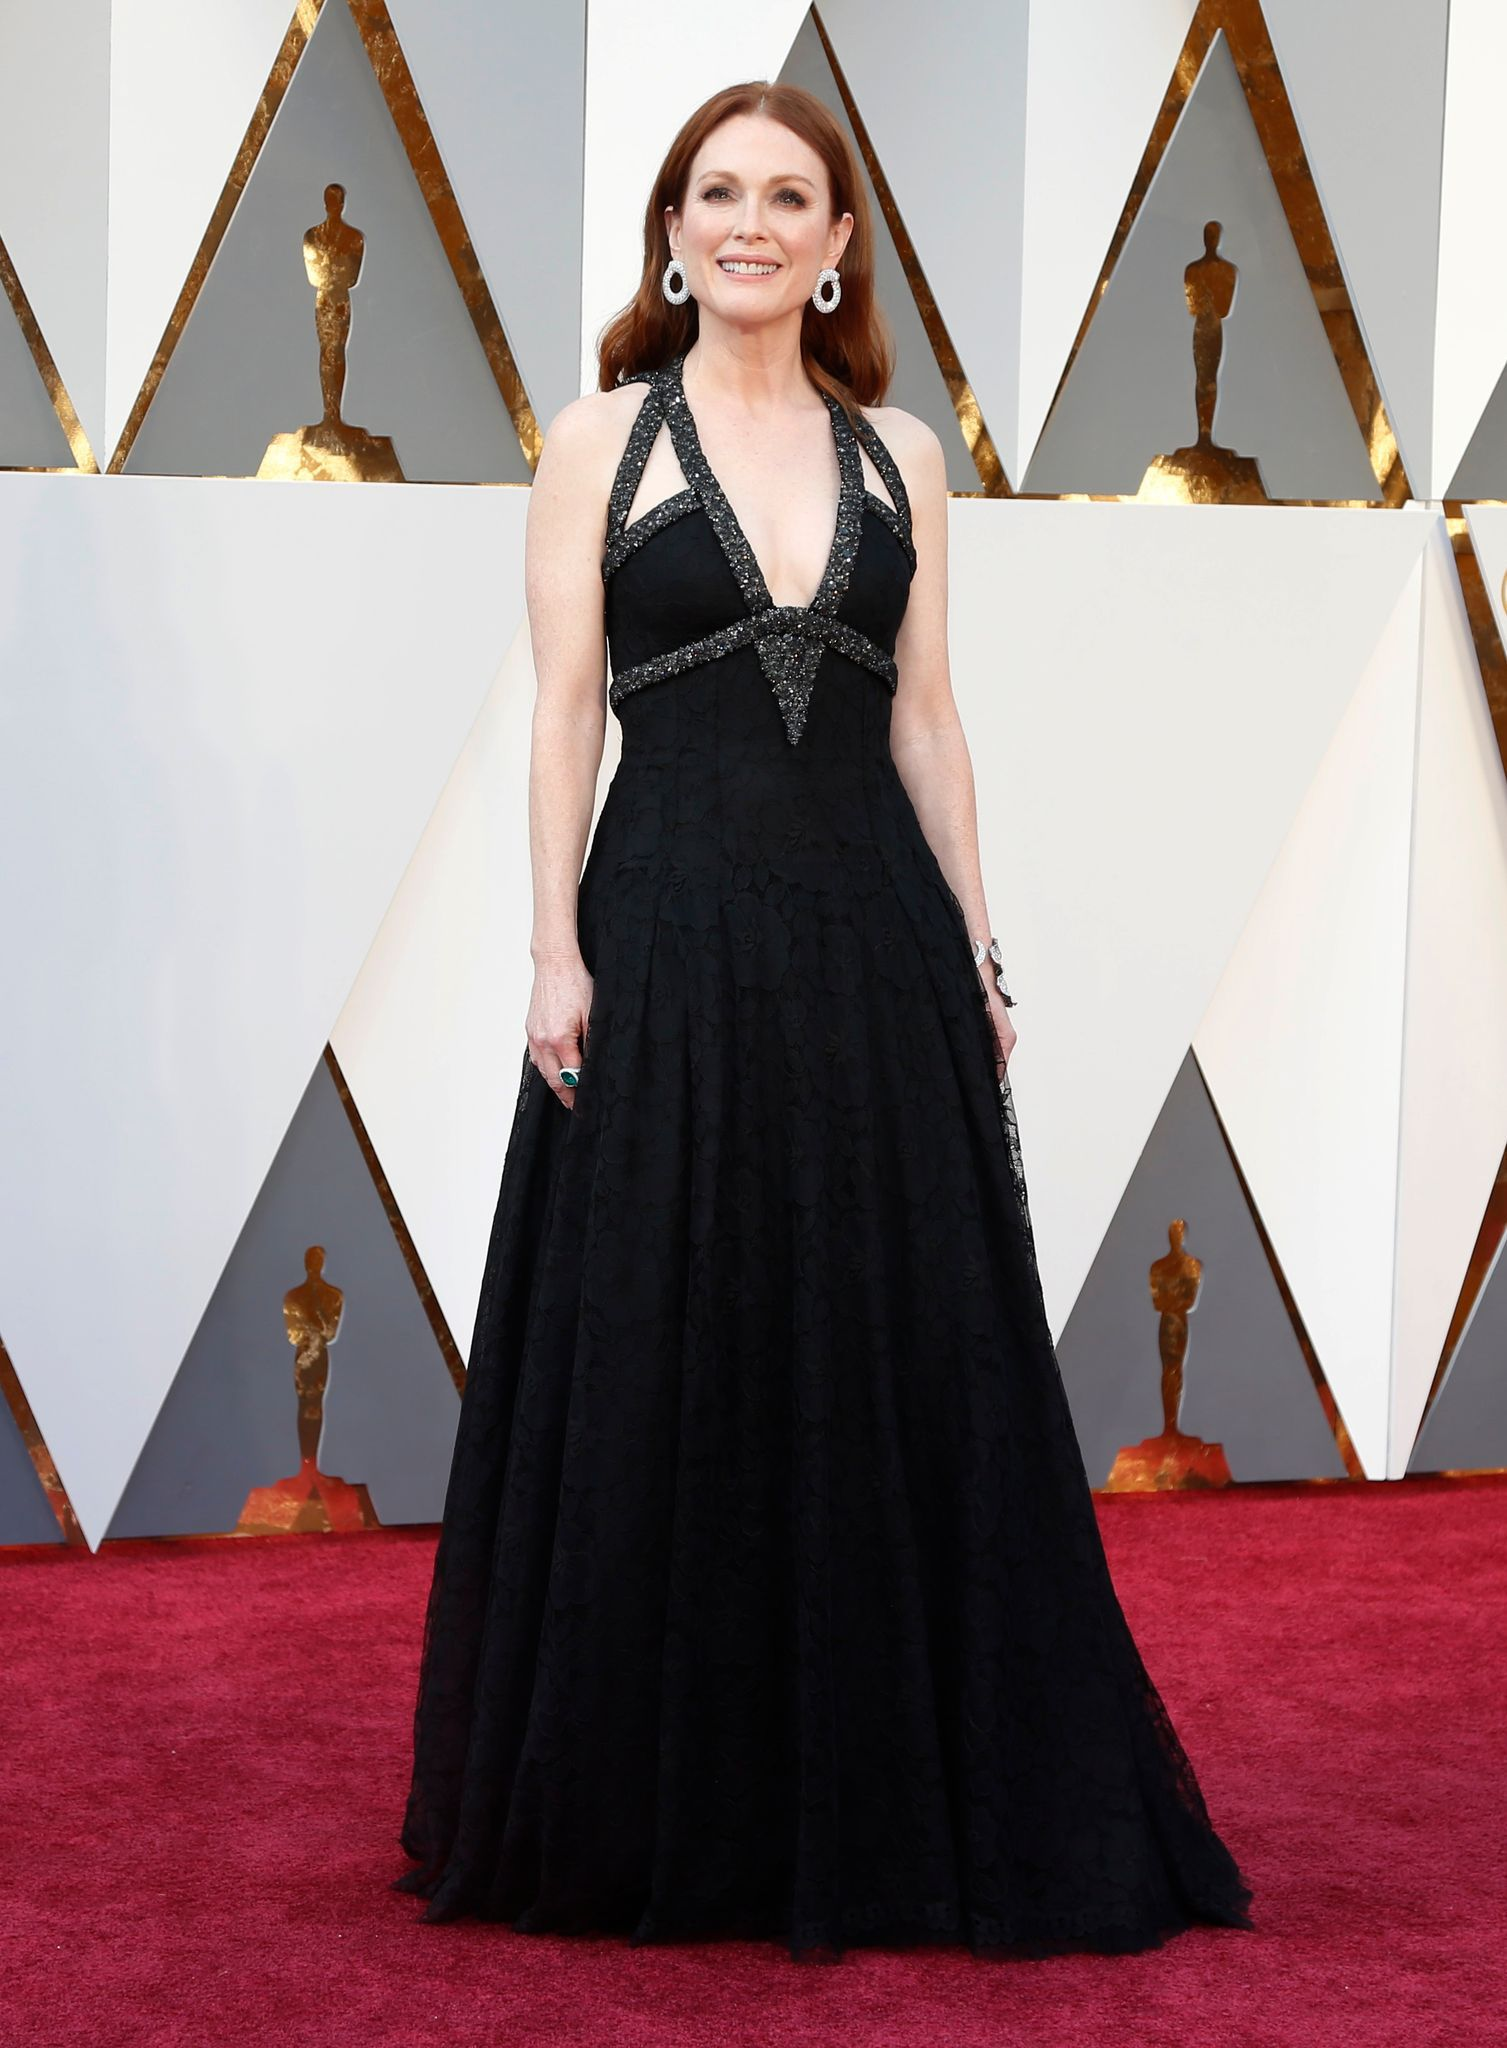 oscars-2016-julianne-moore-en-robe_5551123